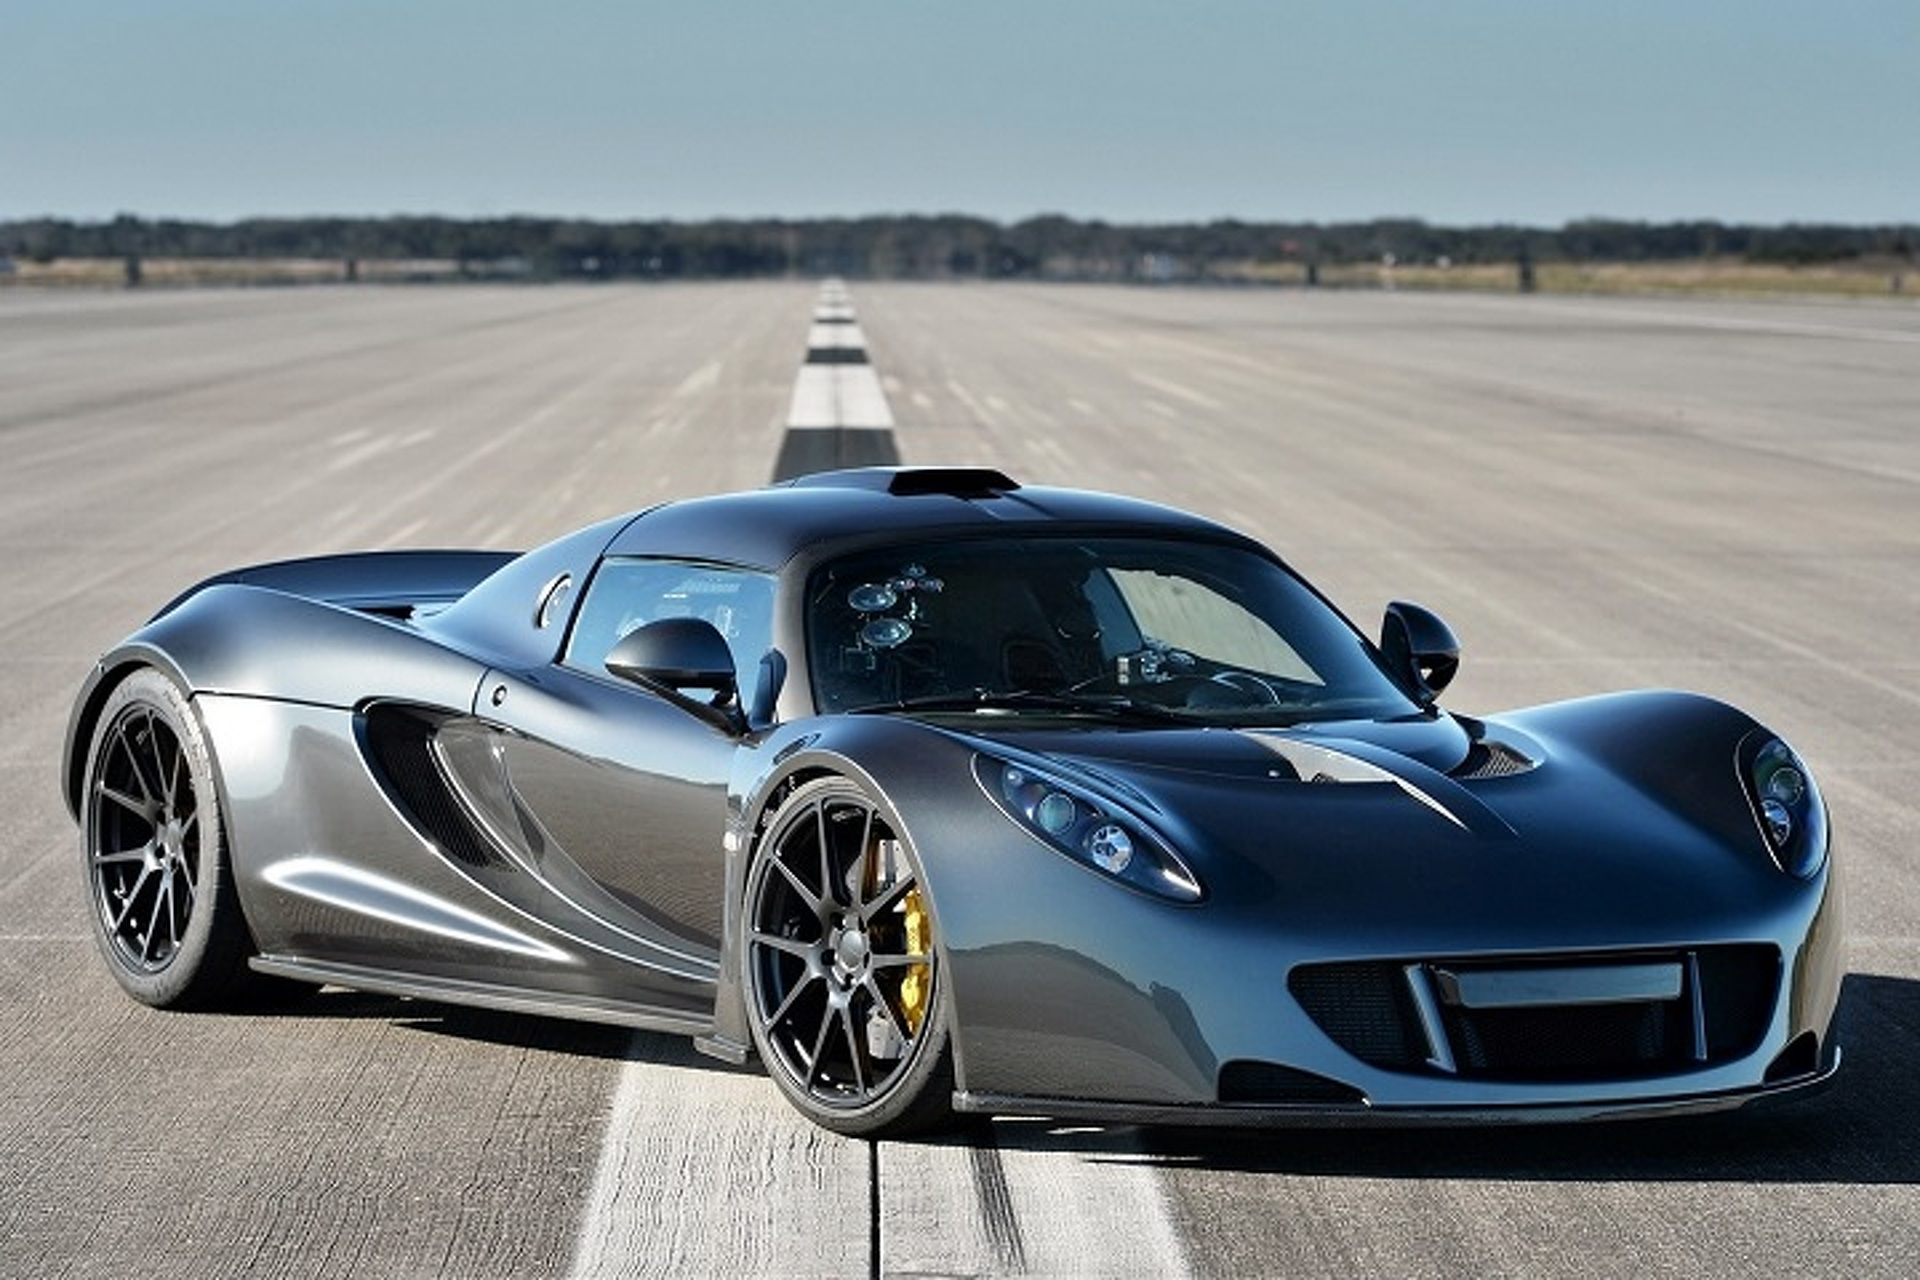 Hennessey Might Build a 1000-HP Electric Hypercar